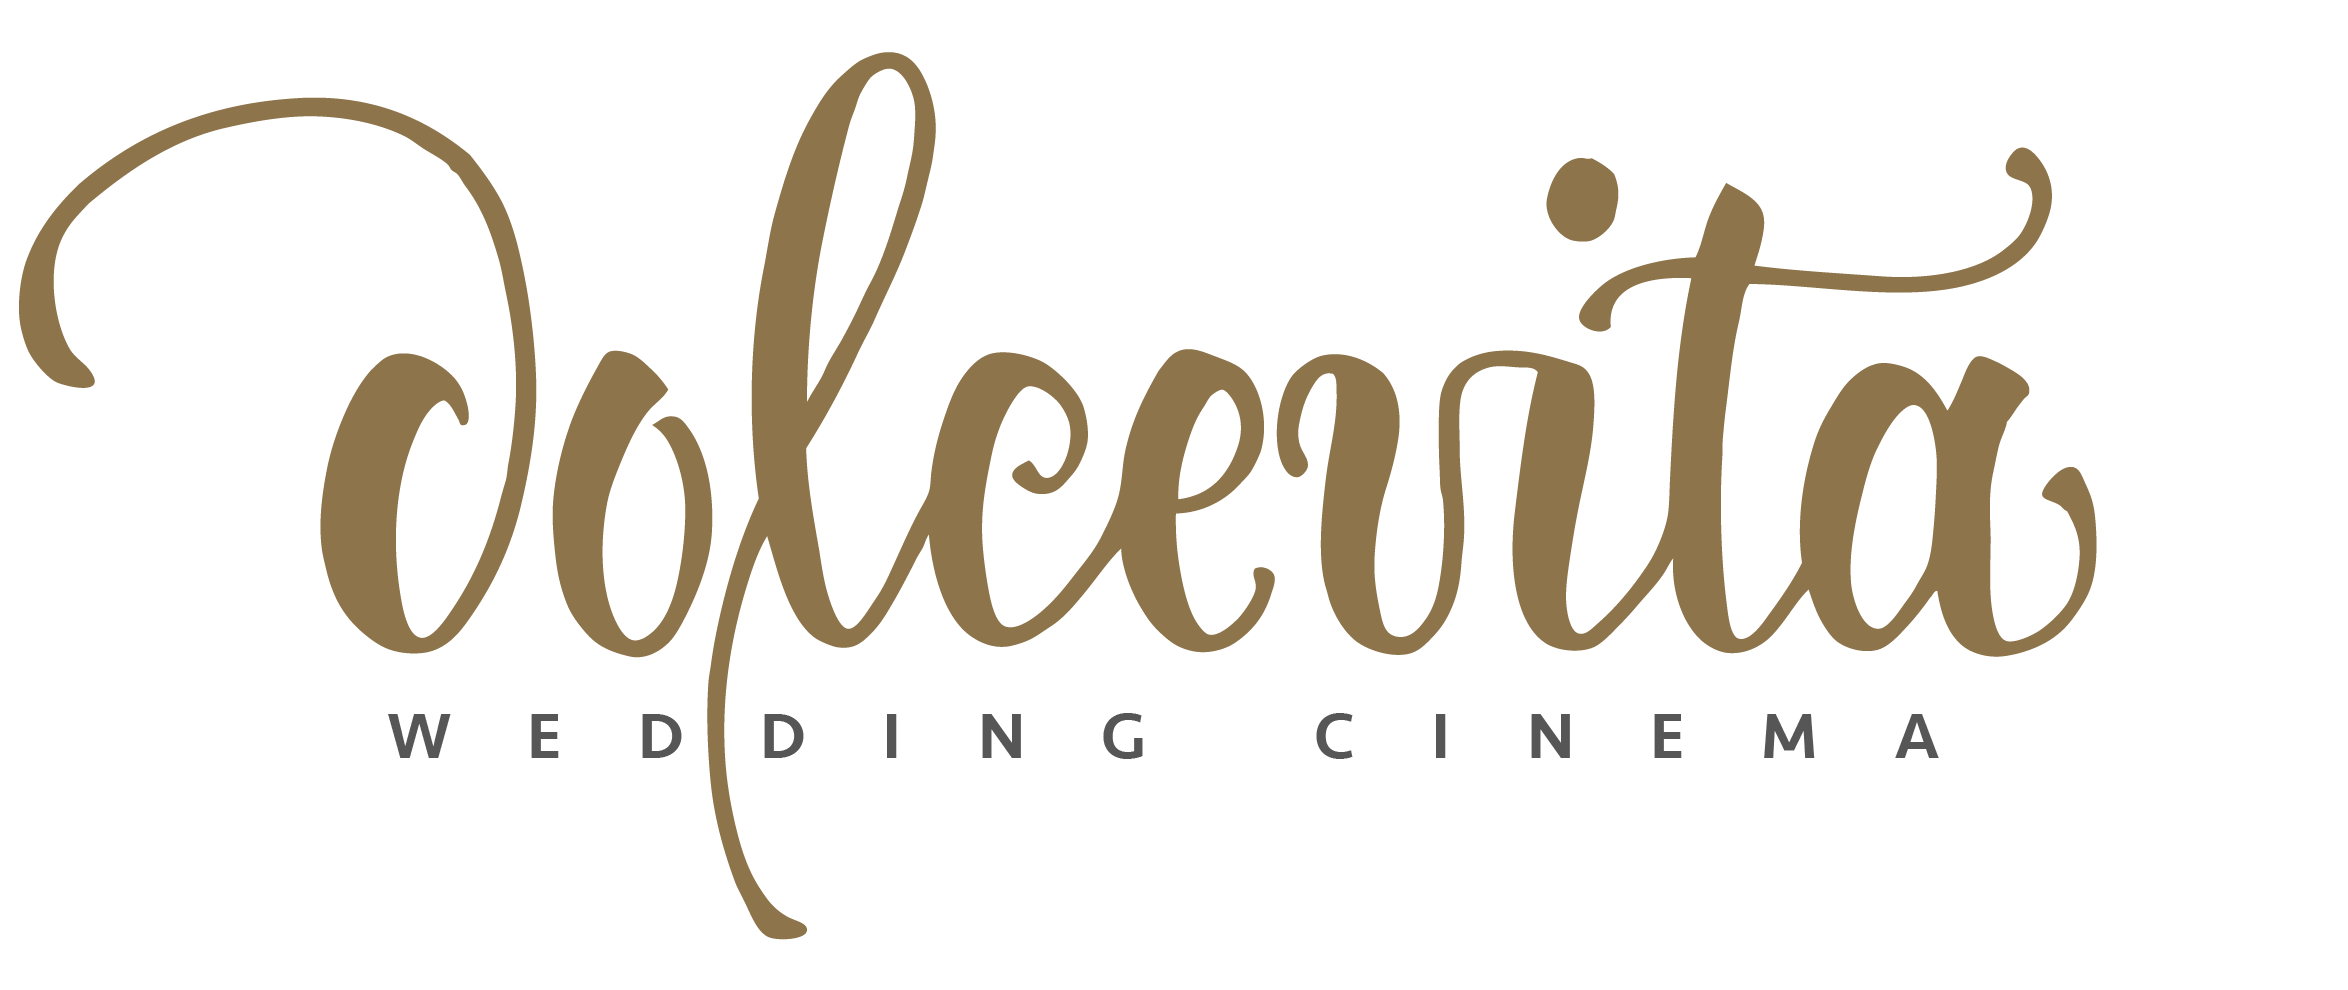 DOLCEVITA Wedding Cinema - Italian Wedding Videographer